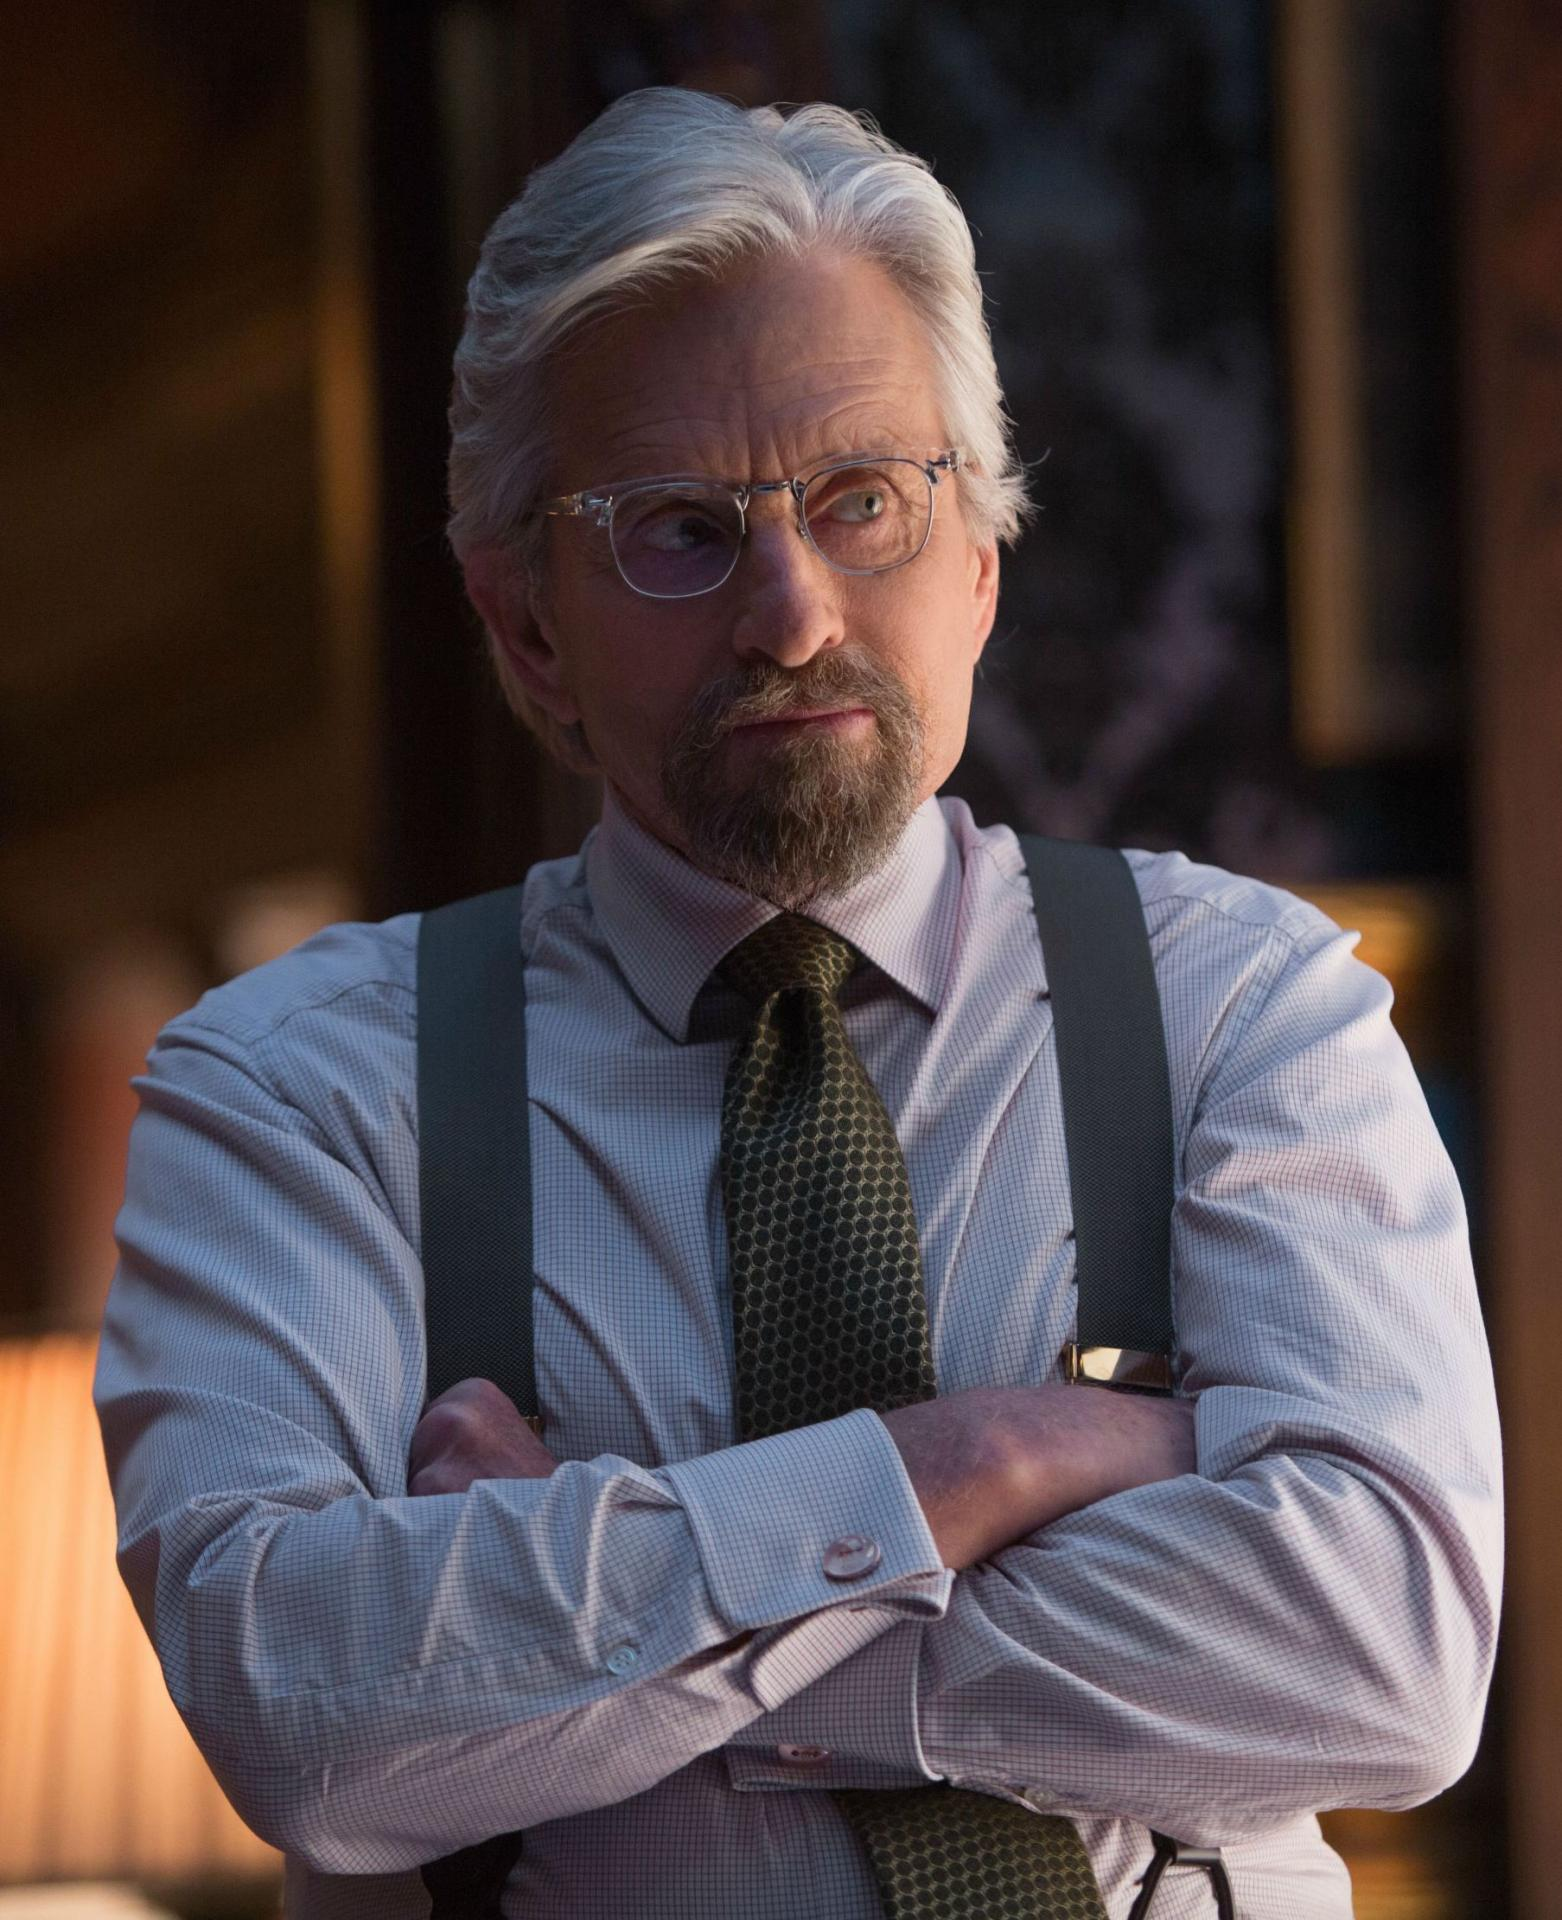 Hank pym profile picture